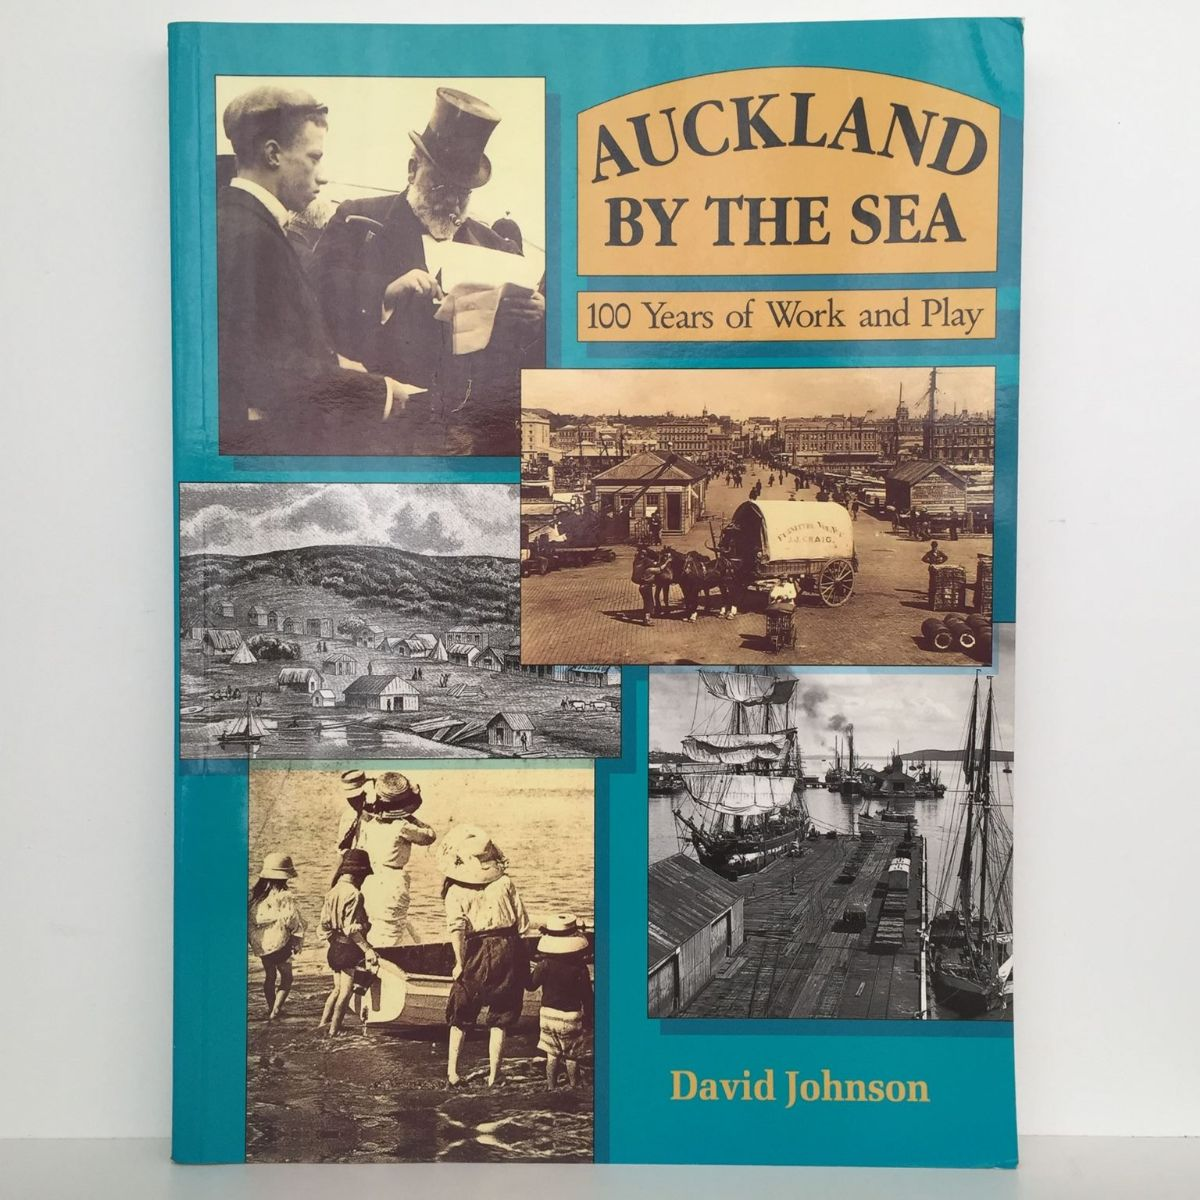 AUCKLAND BY THE SEA: 100 Years of Work and Play